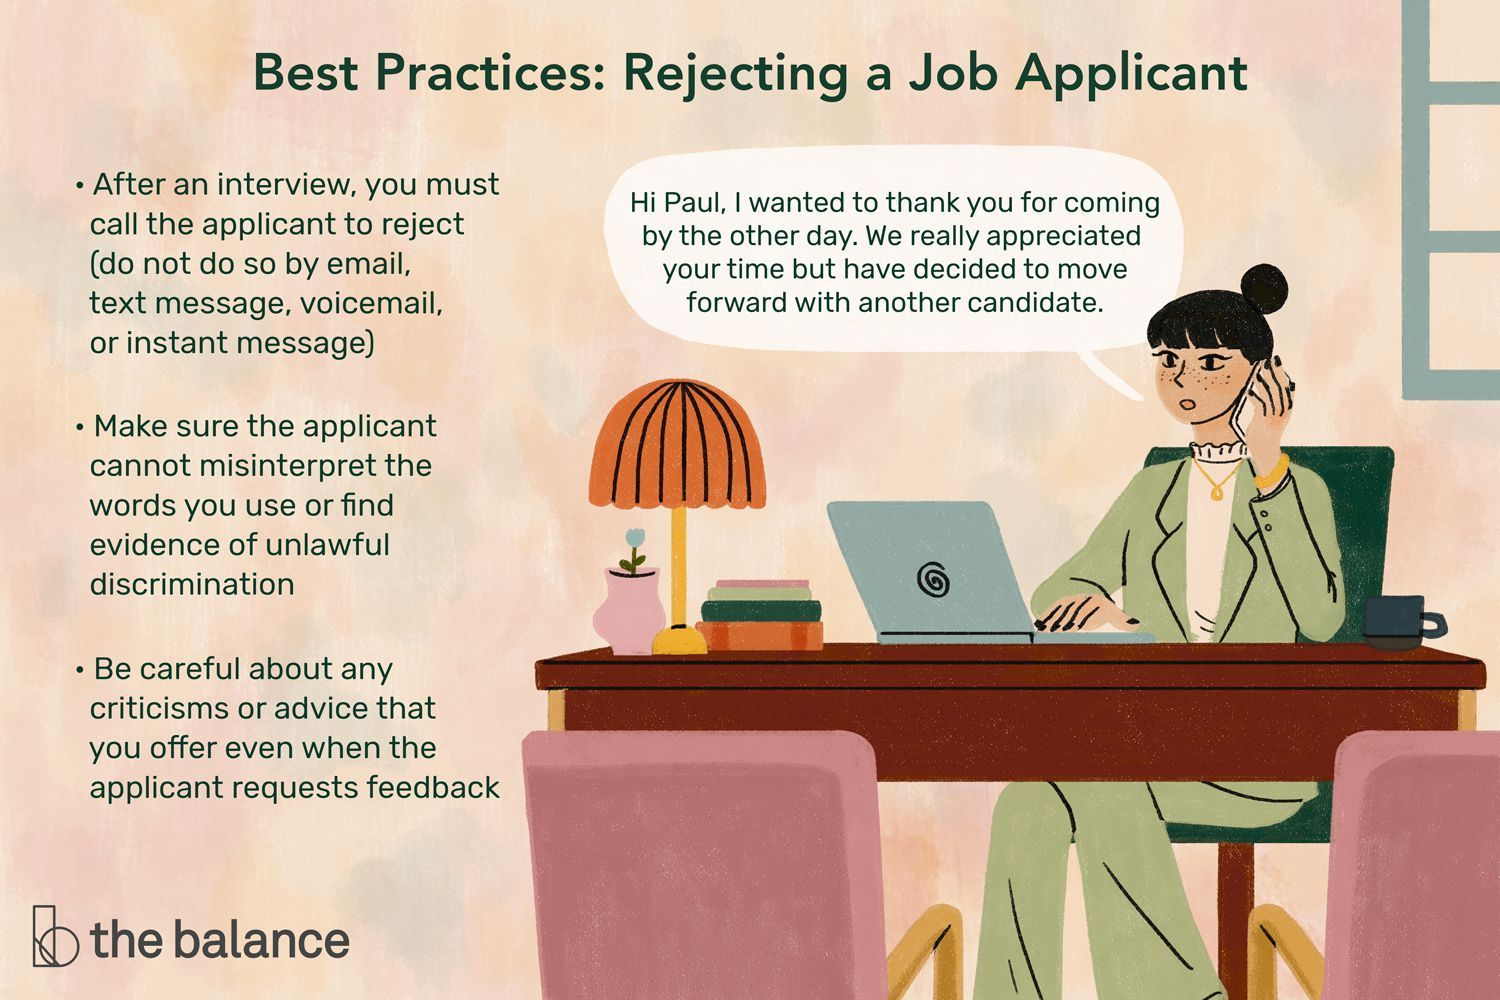 Here are the steps when you need to reject job